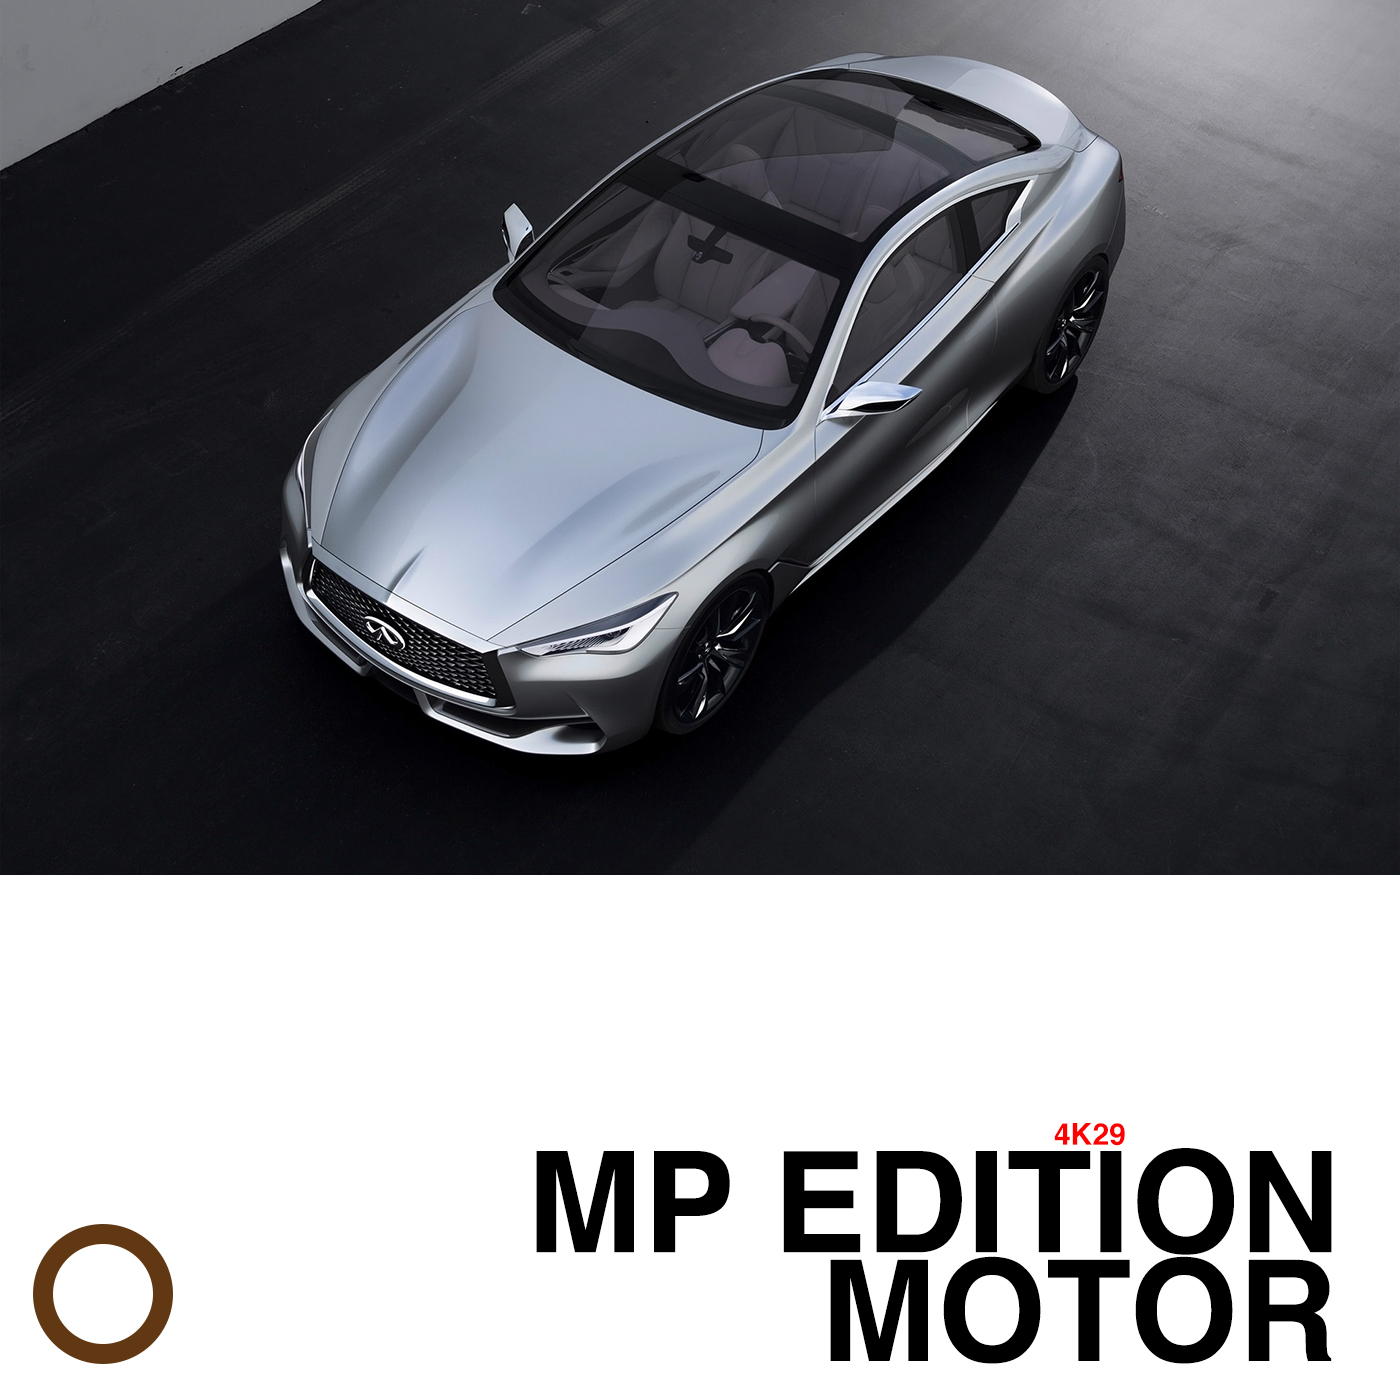 MP EDITION MOTOR 4K29 MOBILE640